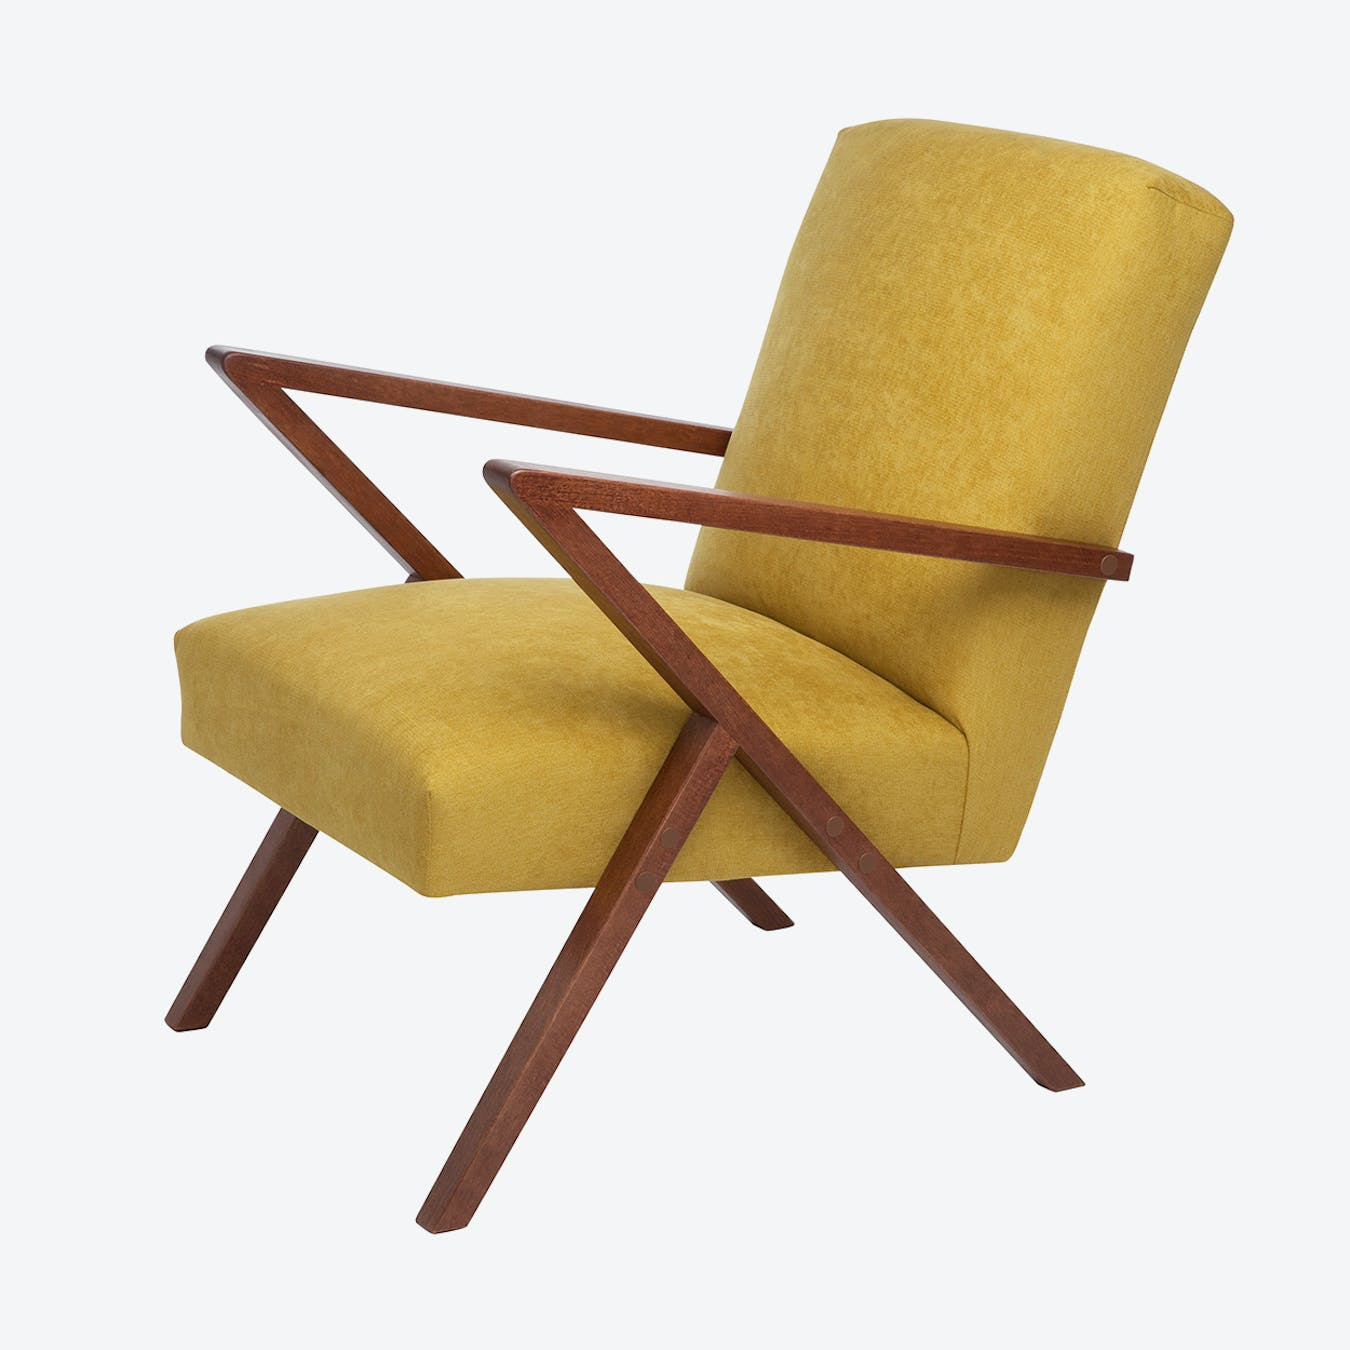 Retrostar Chair - Basic Line in Yellow